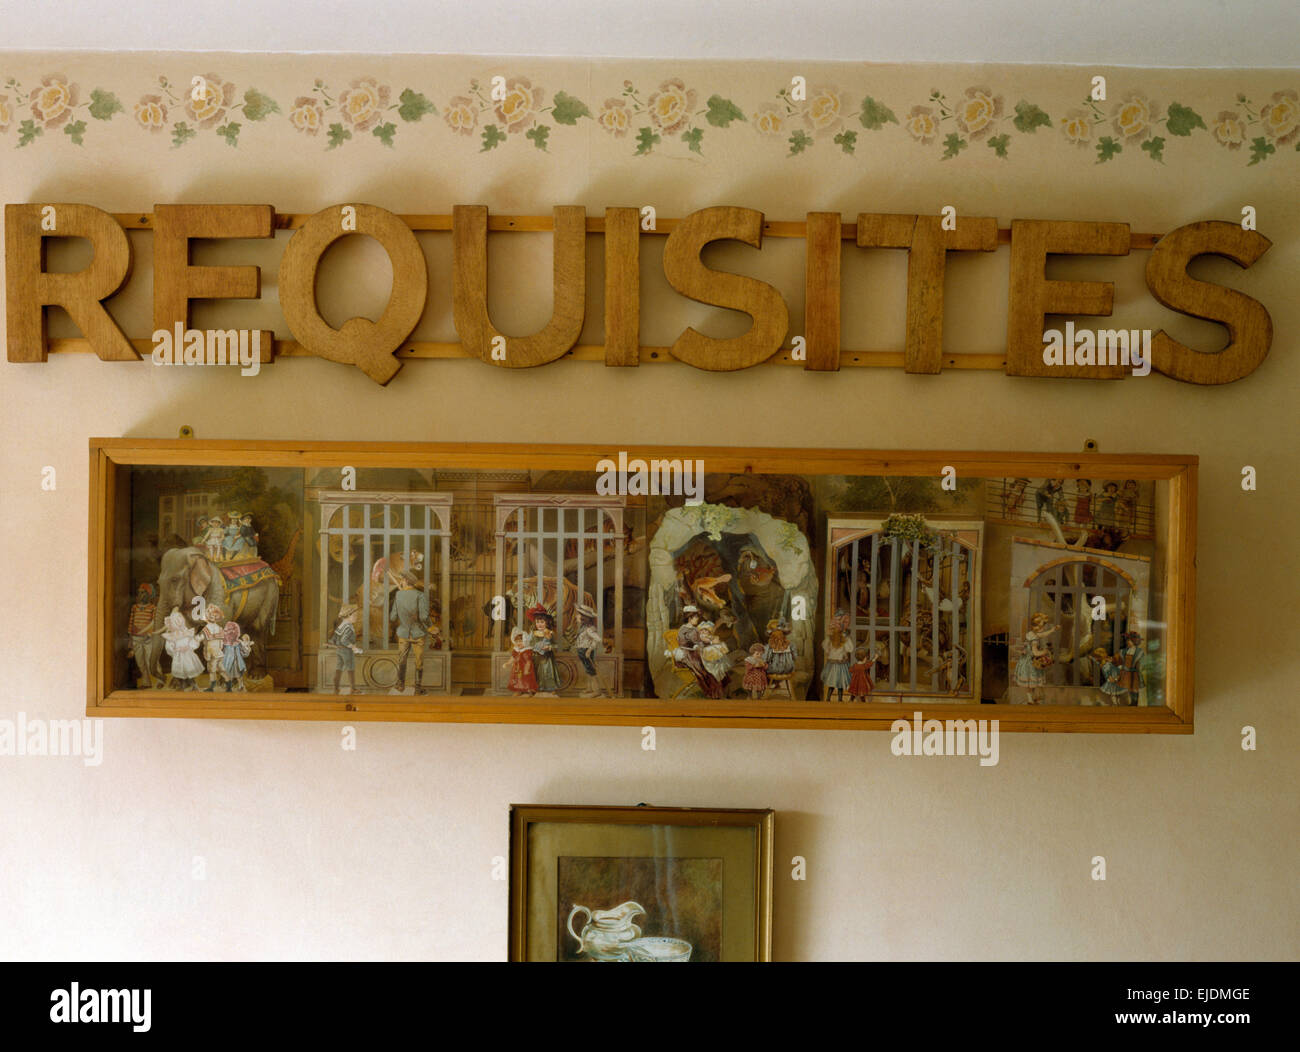 Wooden letters on wall above tableau boxes - Stock Image